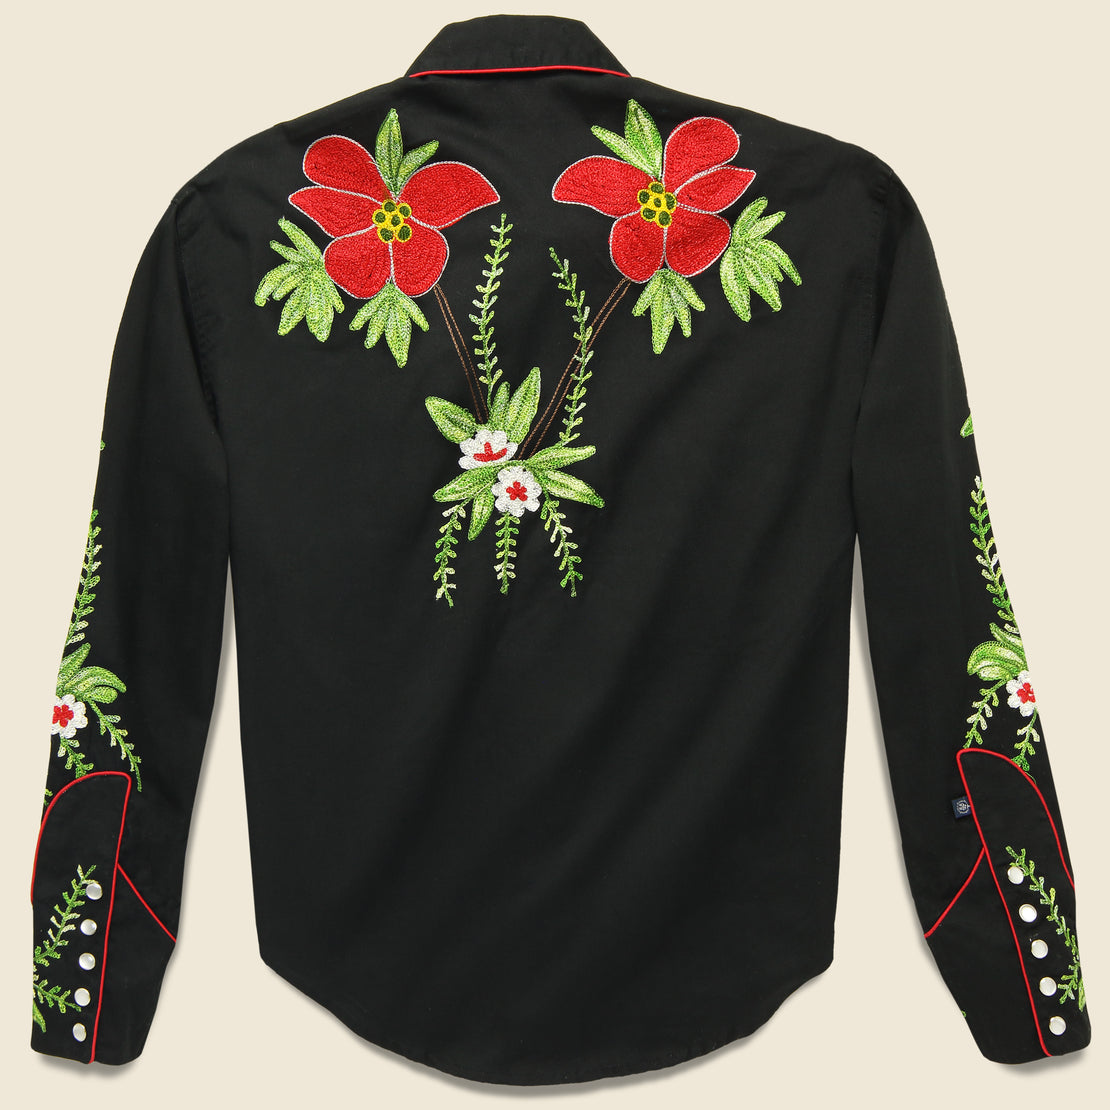 Rockmount Embroidered Poinsettia Pearl Snap Shirt - Black